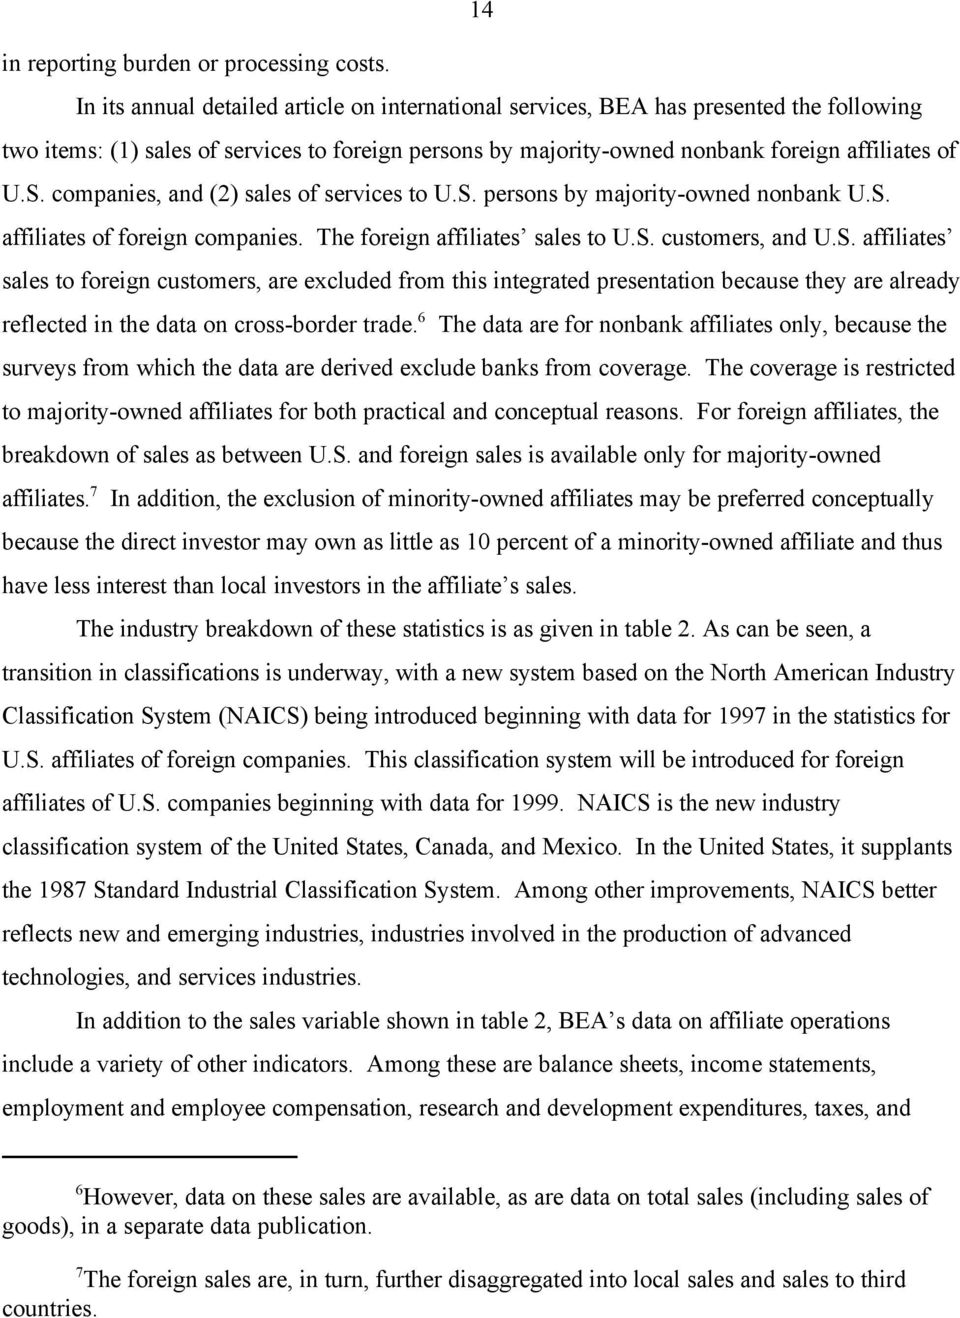 companies, and (2) sales of services to U.S. persons by majority-owned nonbank U.S. affiliates of foreign companies. The foreign affiliates sales to U.S. customers, and U.S. affiliates sales to foreign customers, are excluded from this integrated presentation because they are already reflected in the data on cross-border trade.